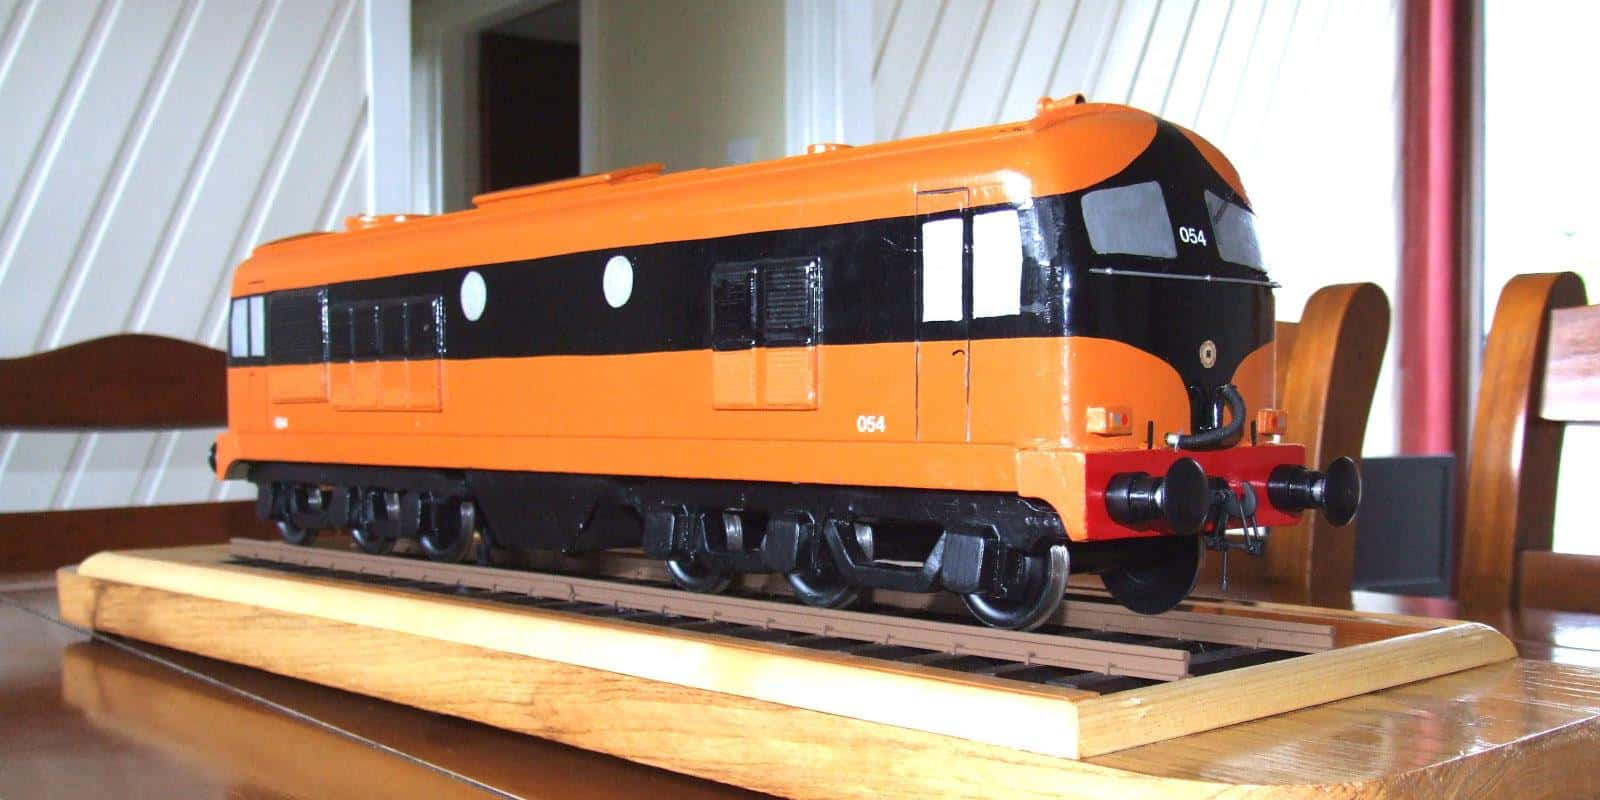 A display model of an Irish Rail A Class diesel locomotive